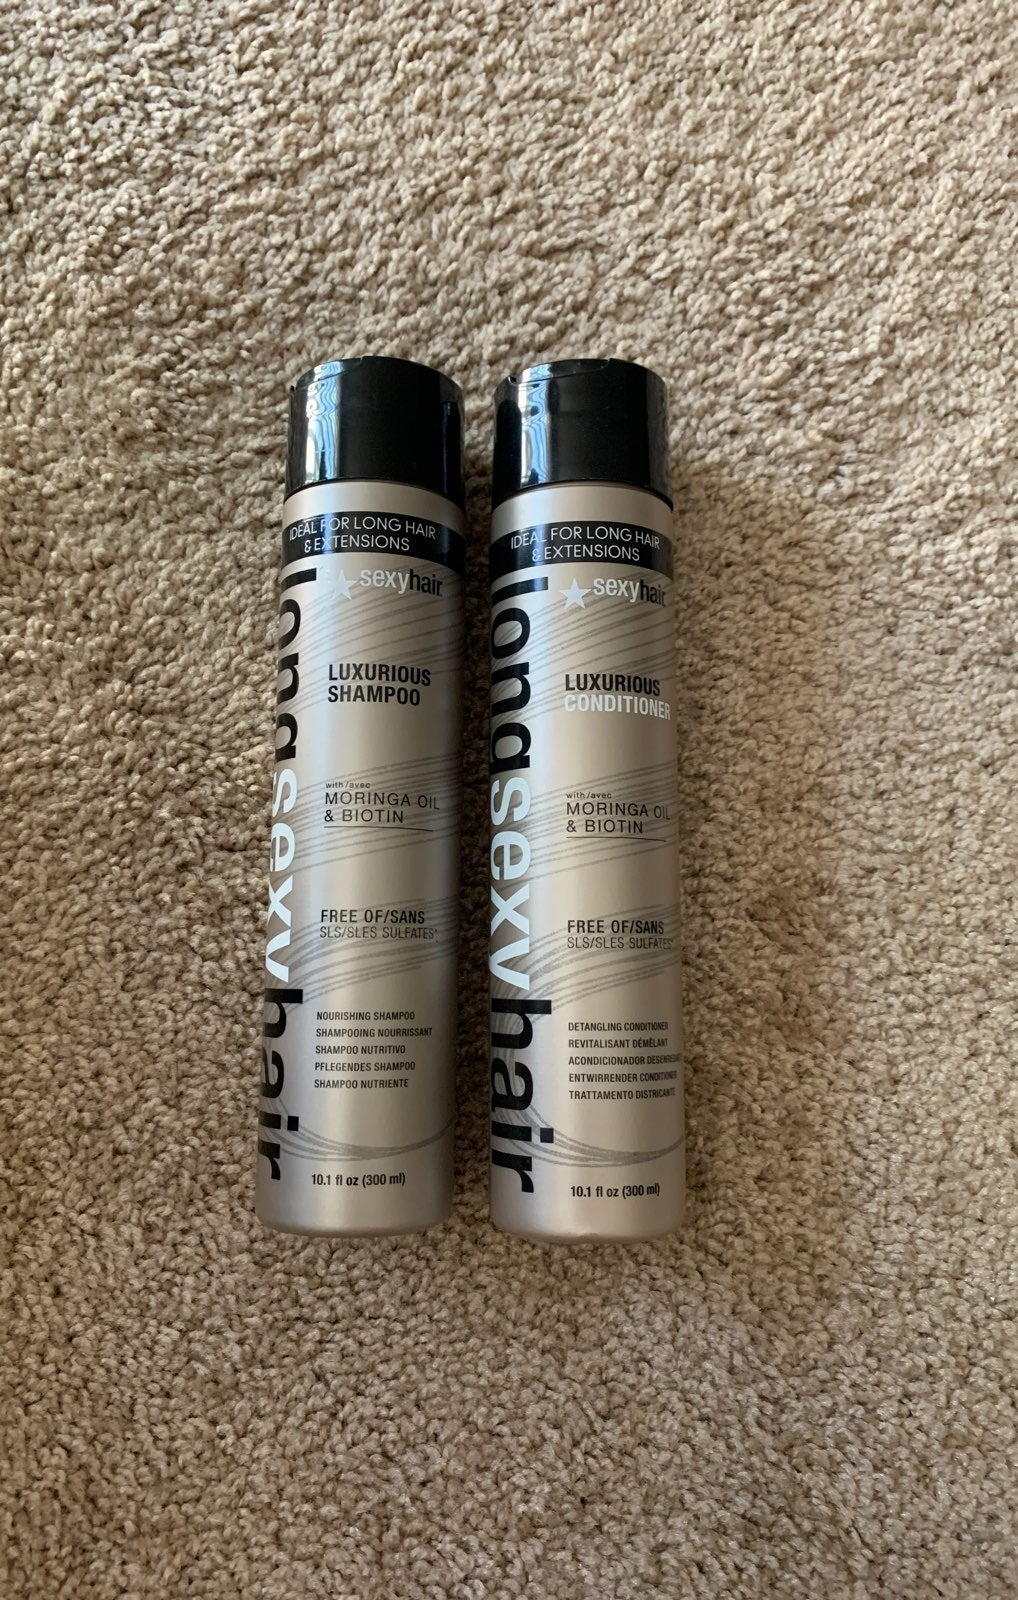 Long Sexy Hair Shampoo and Conditioner